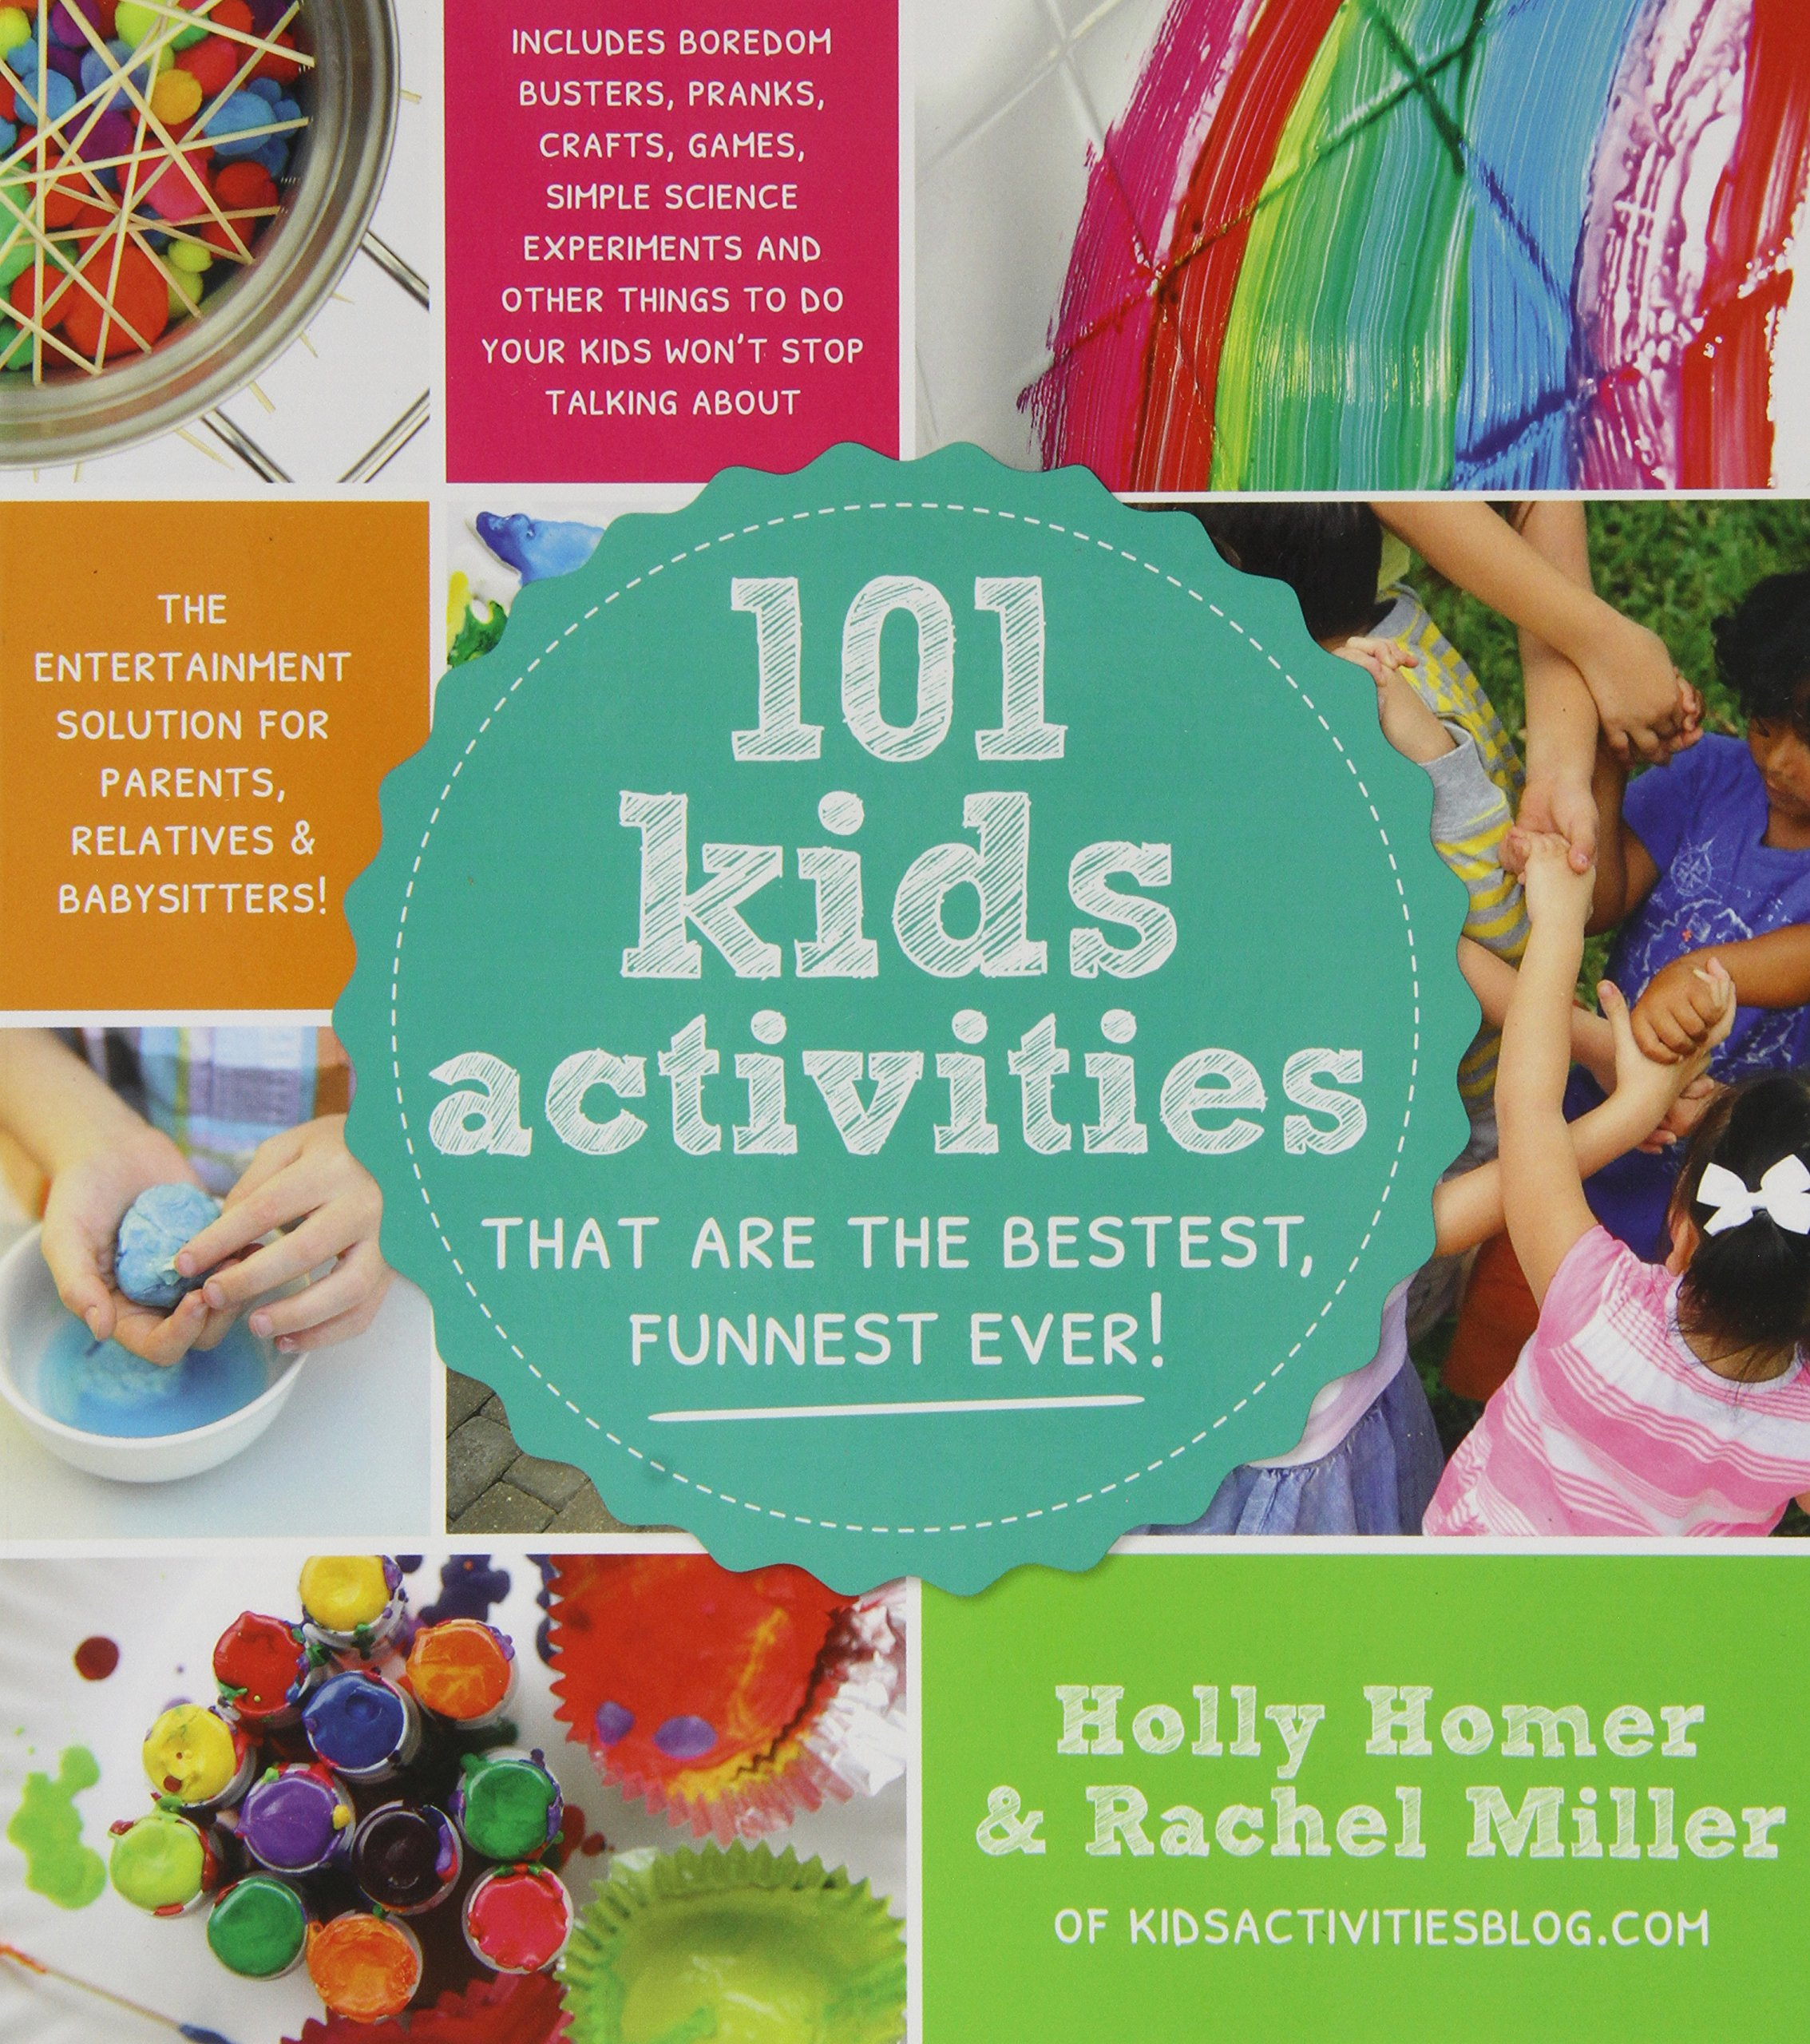 101 kids activities that are the bestest funnest ever the entertainment solution for parents relatives babysitters holly homer rachel miller